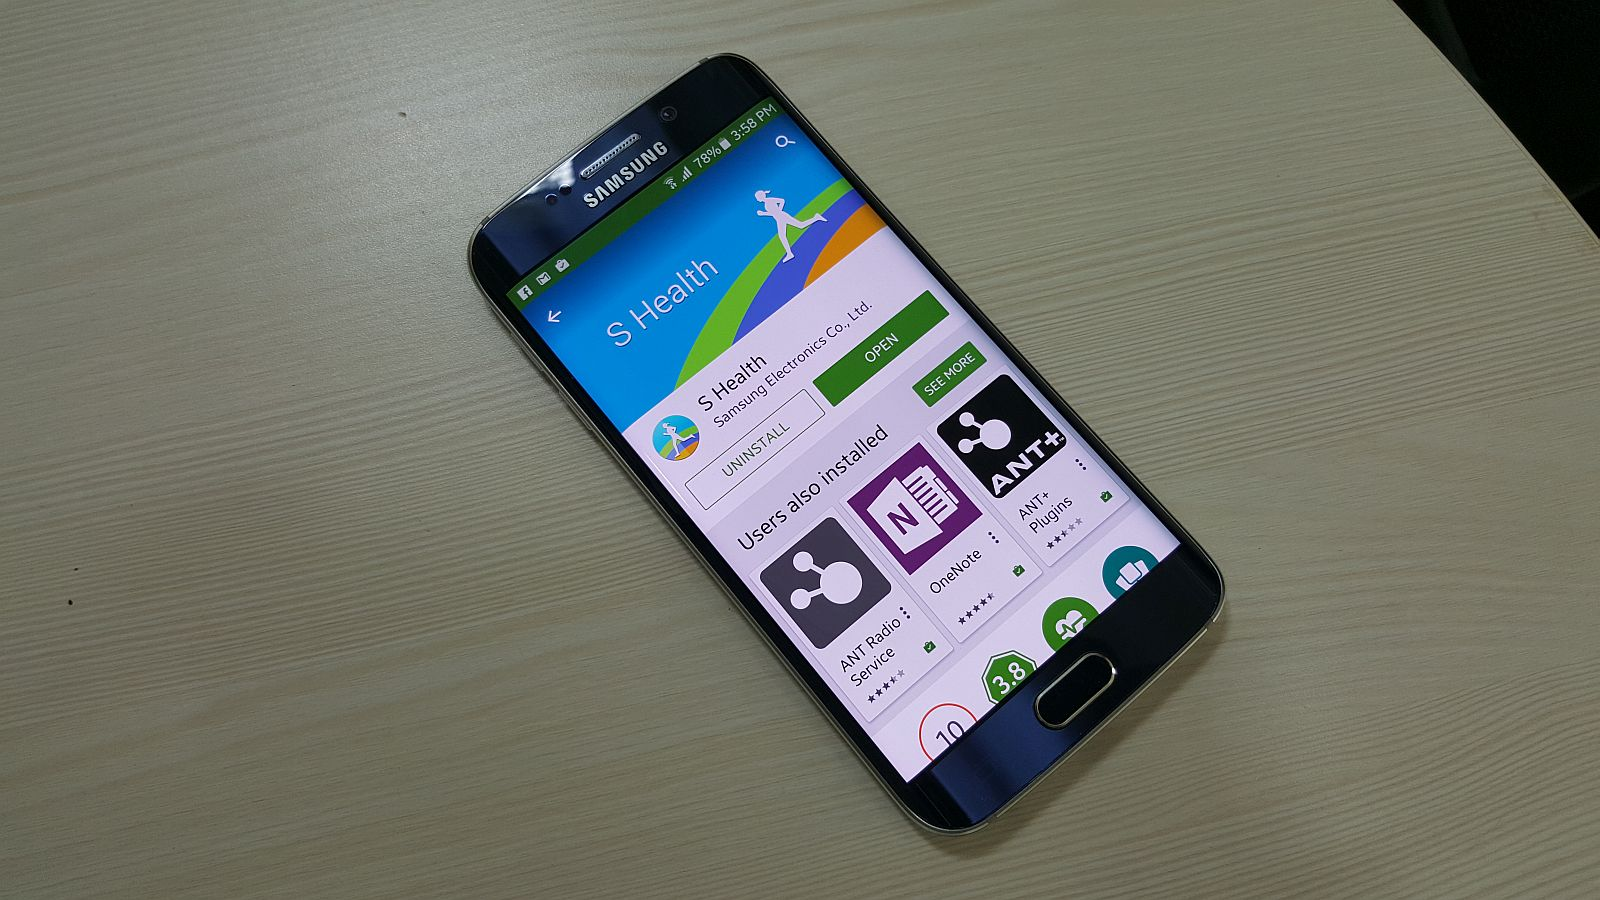 Samsungs S Health App Is Now Available On The Play Store